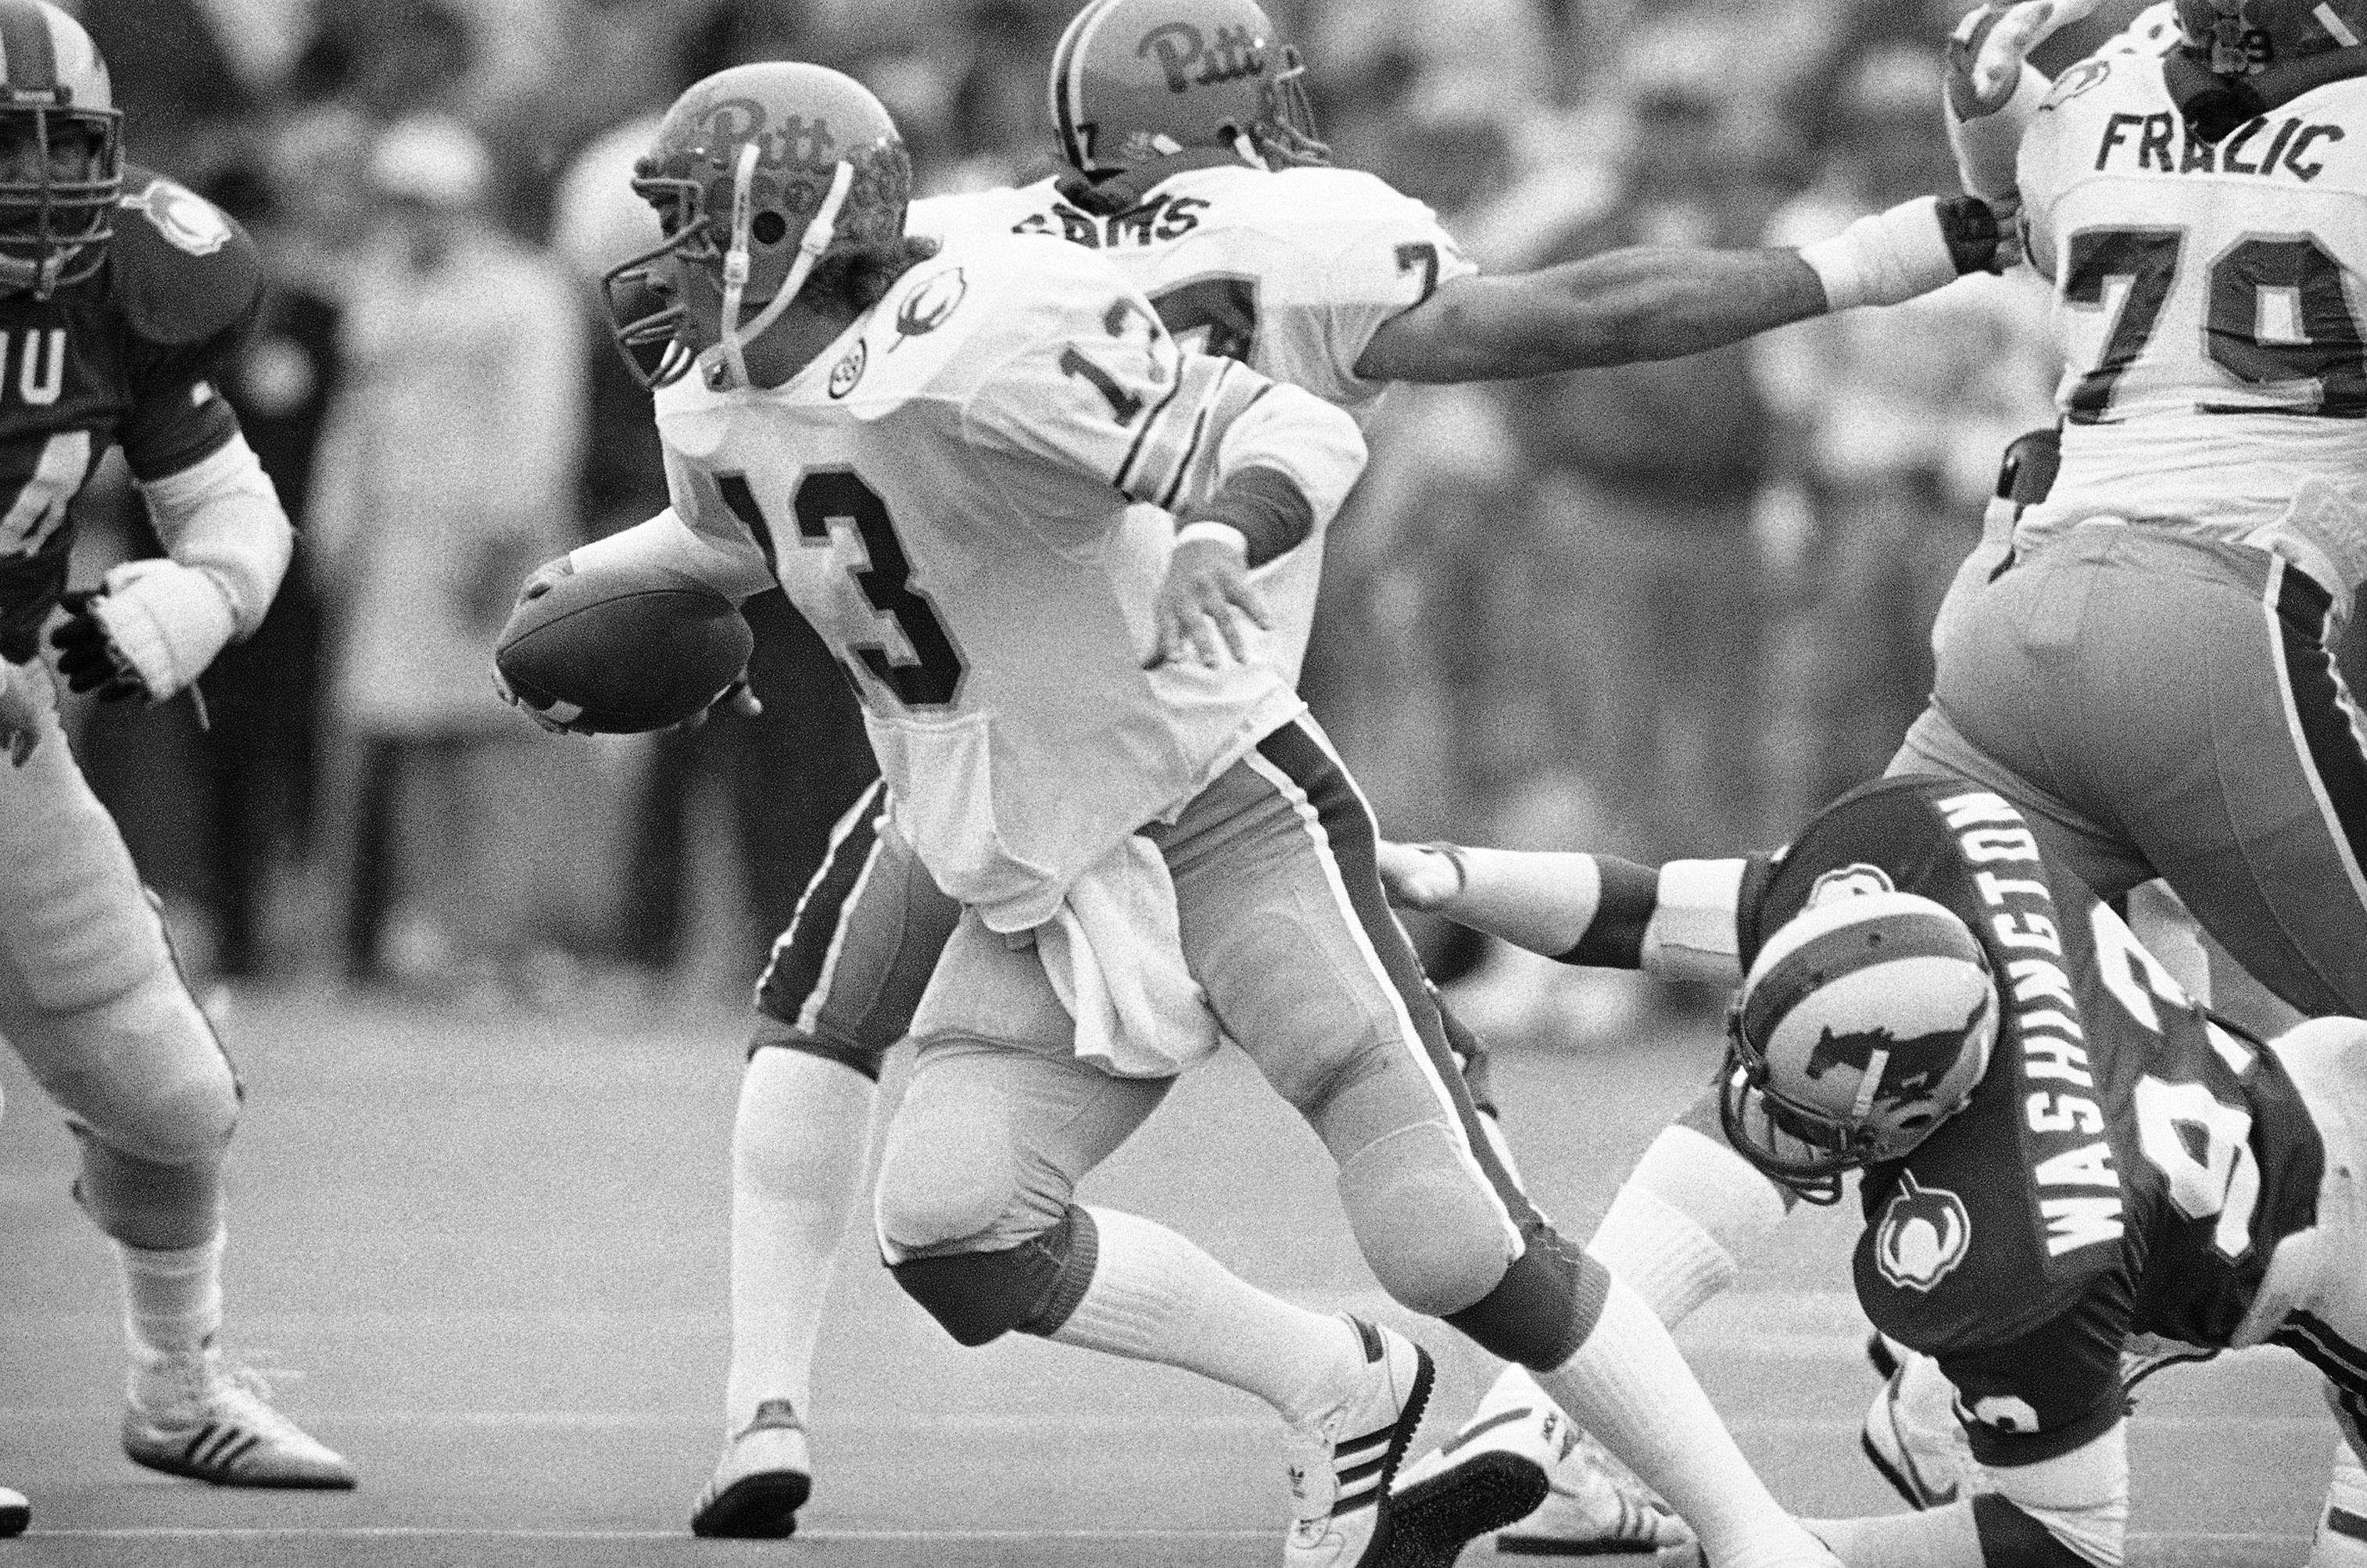 University of Pittsburgh quarterback Dan Marino (13) makes his move to elude the tackle attempt by Southern Methodist University defensive end Russell Washington, right, during first quarter action in the Cotton Bowl, Jan. 1, 1983 in Dallas. Marino gained two yards on the scramble. (AP Photo/Bill Haber)